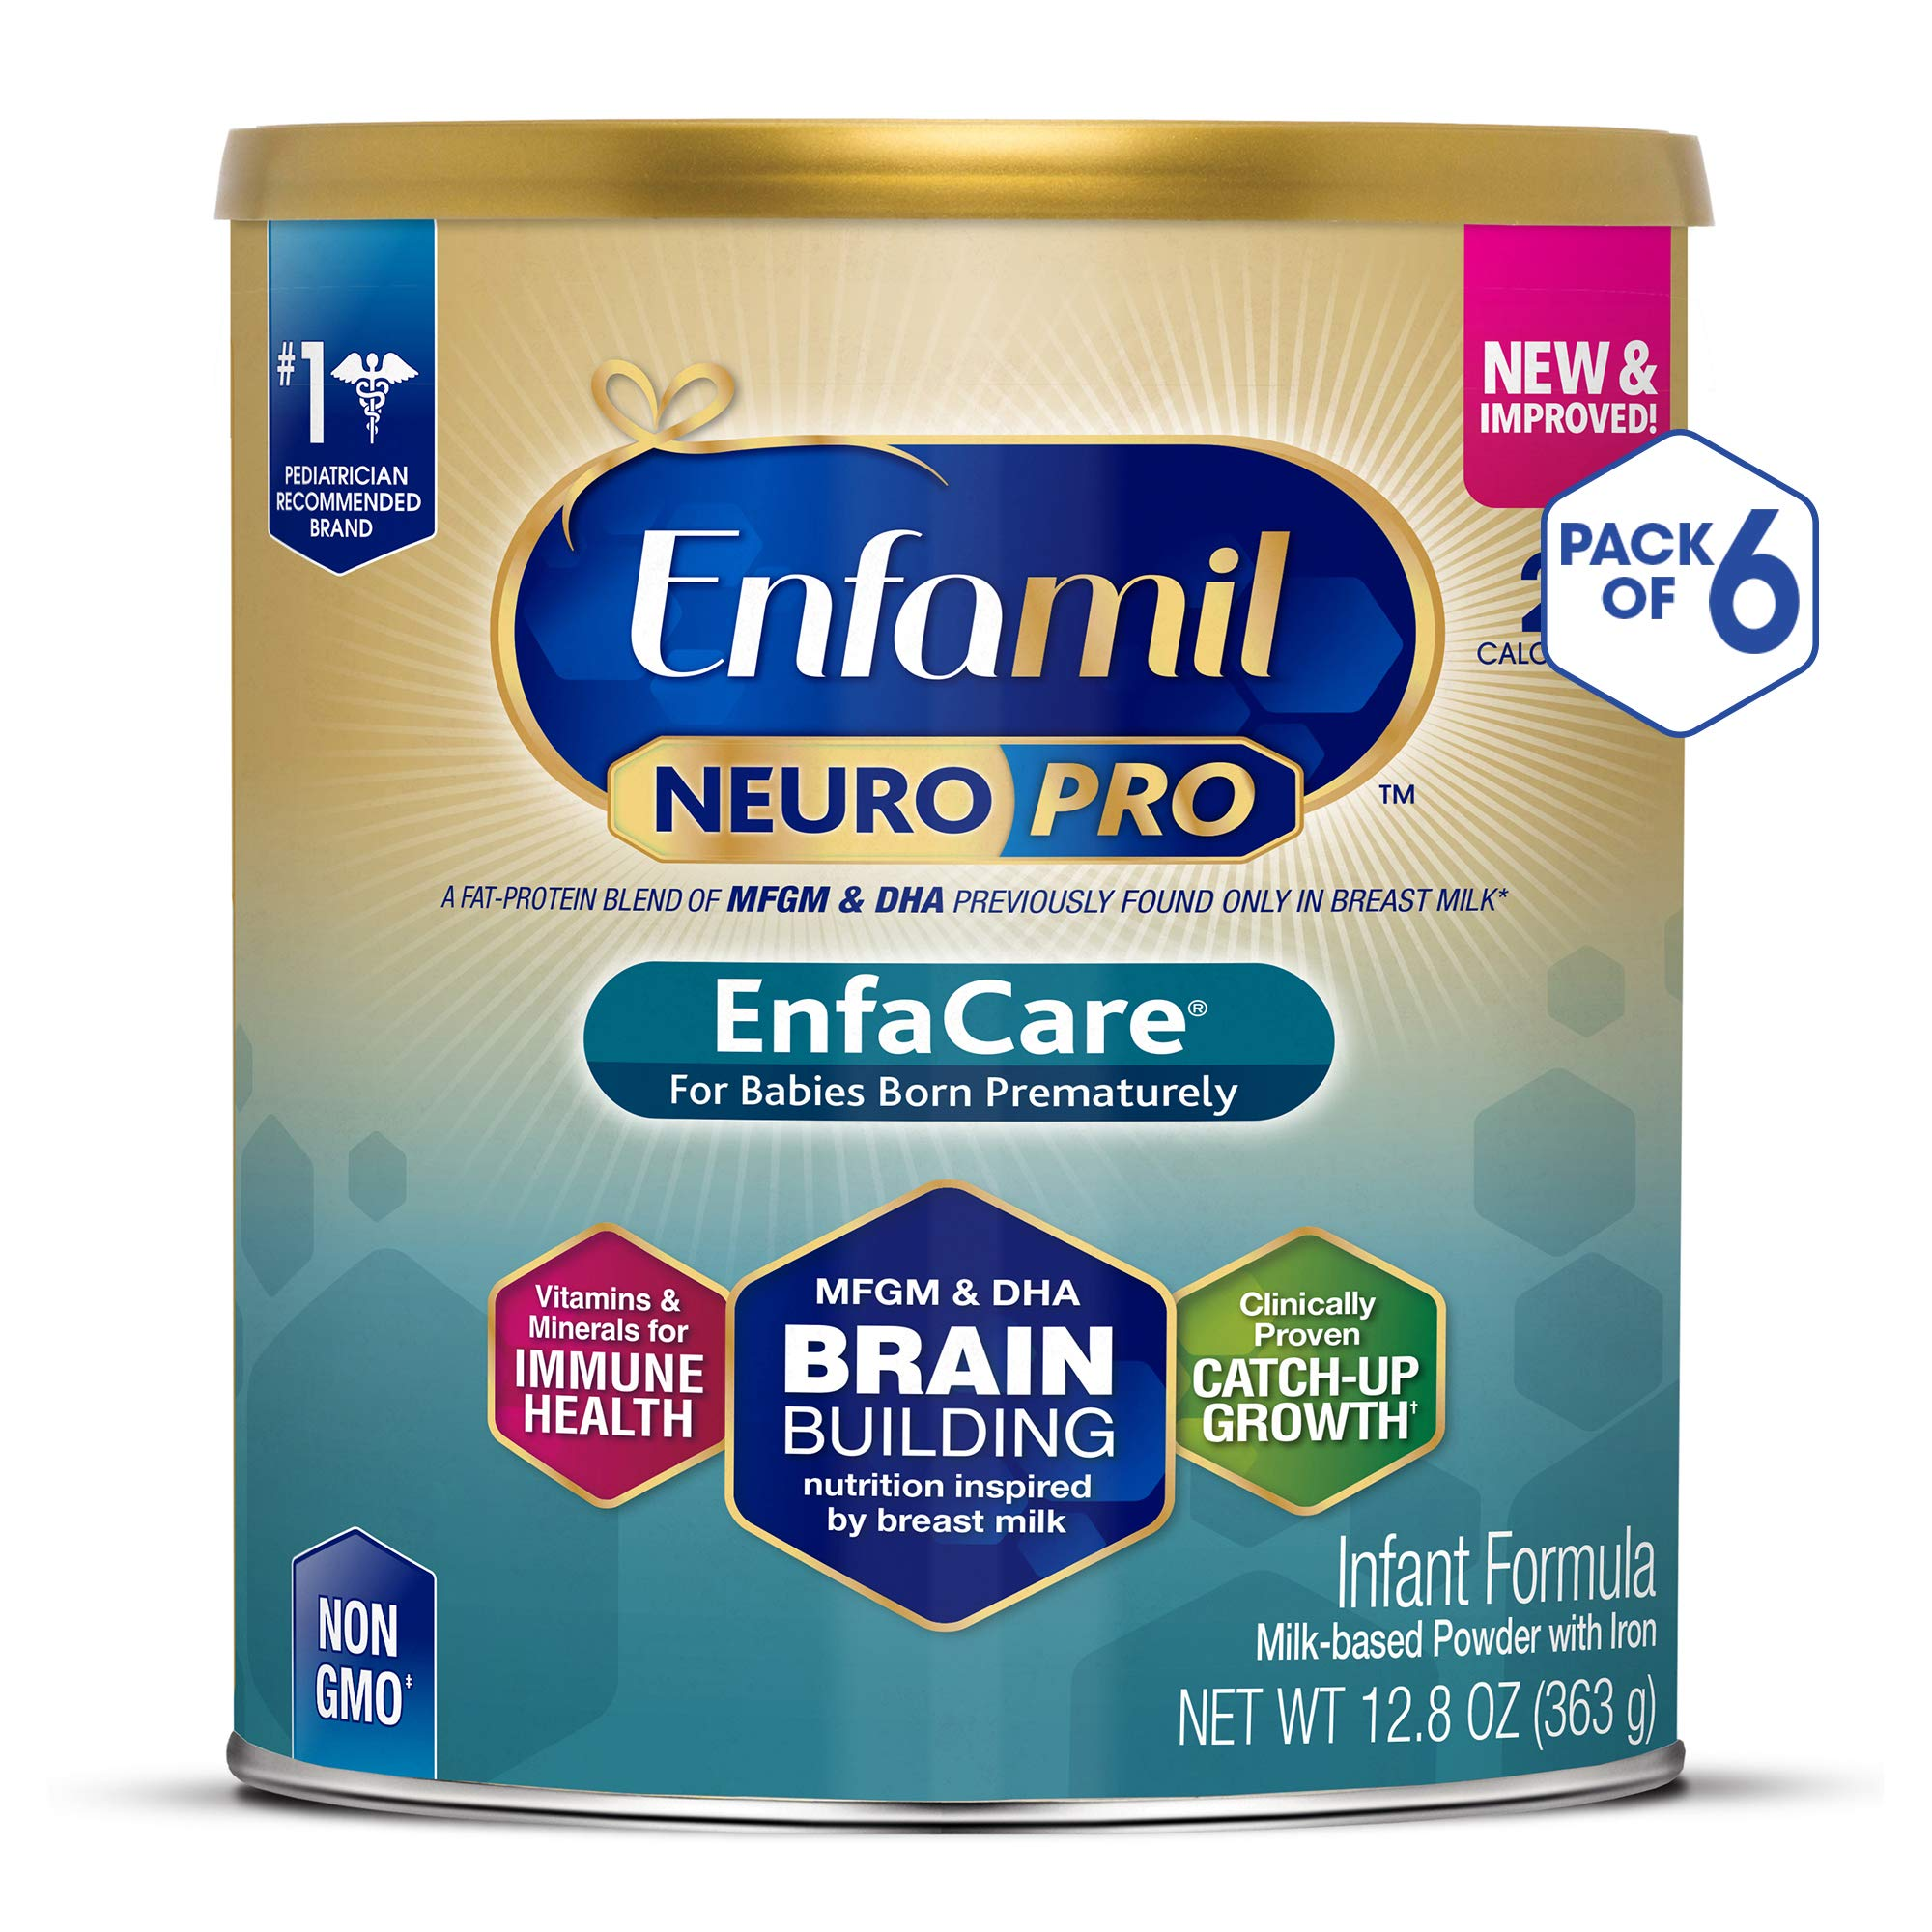 Enfamil NeuroPro EnfaCare Infant Formula - Brain Building Nutrition with Clinically Proven Growth Benefits for Premature Babies - Powder Can, 12.8 oz (Pack of 6) by Enfamil (Image #1)